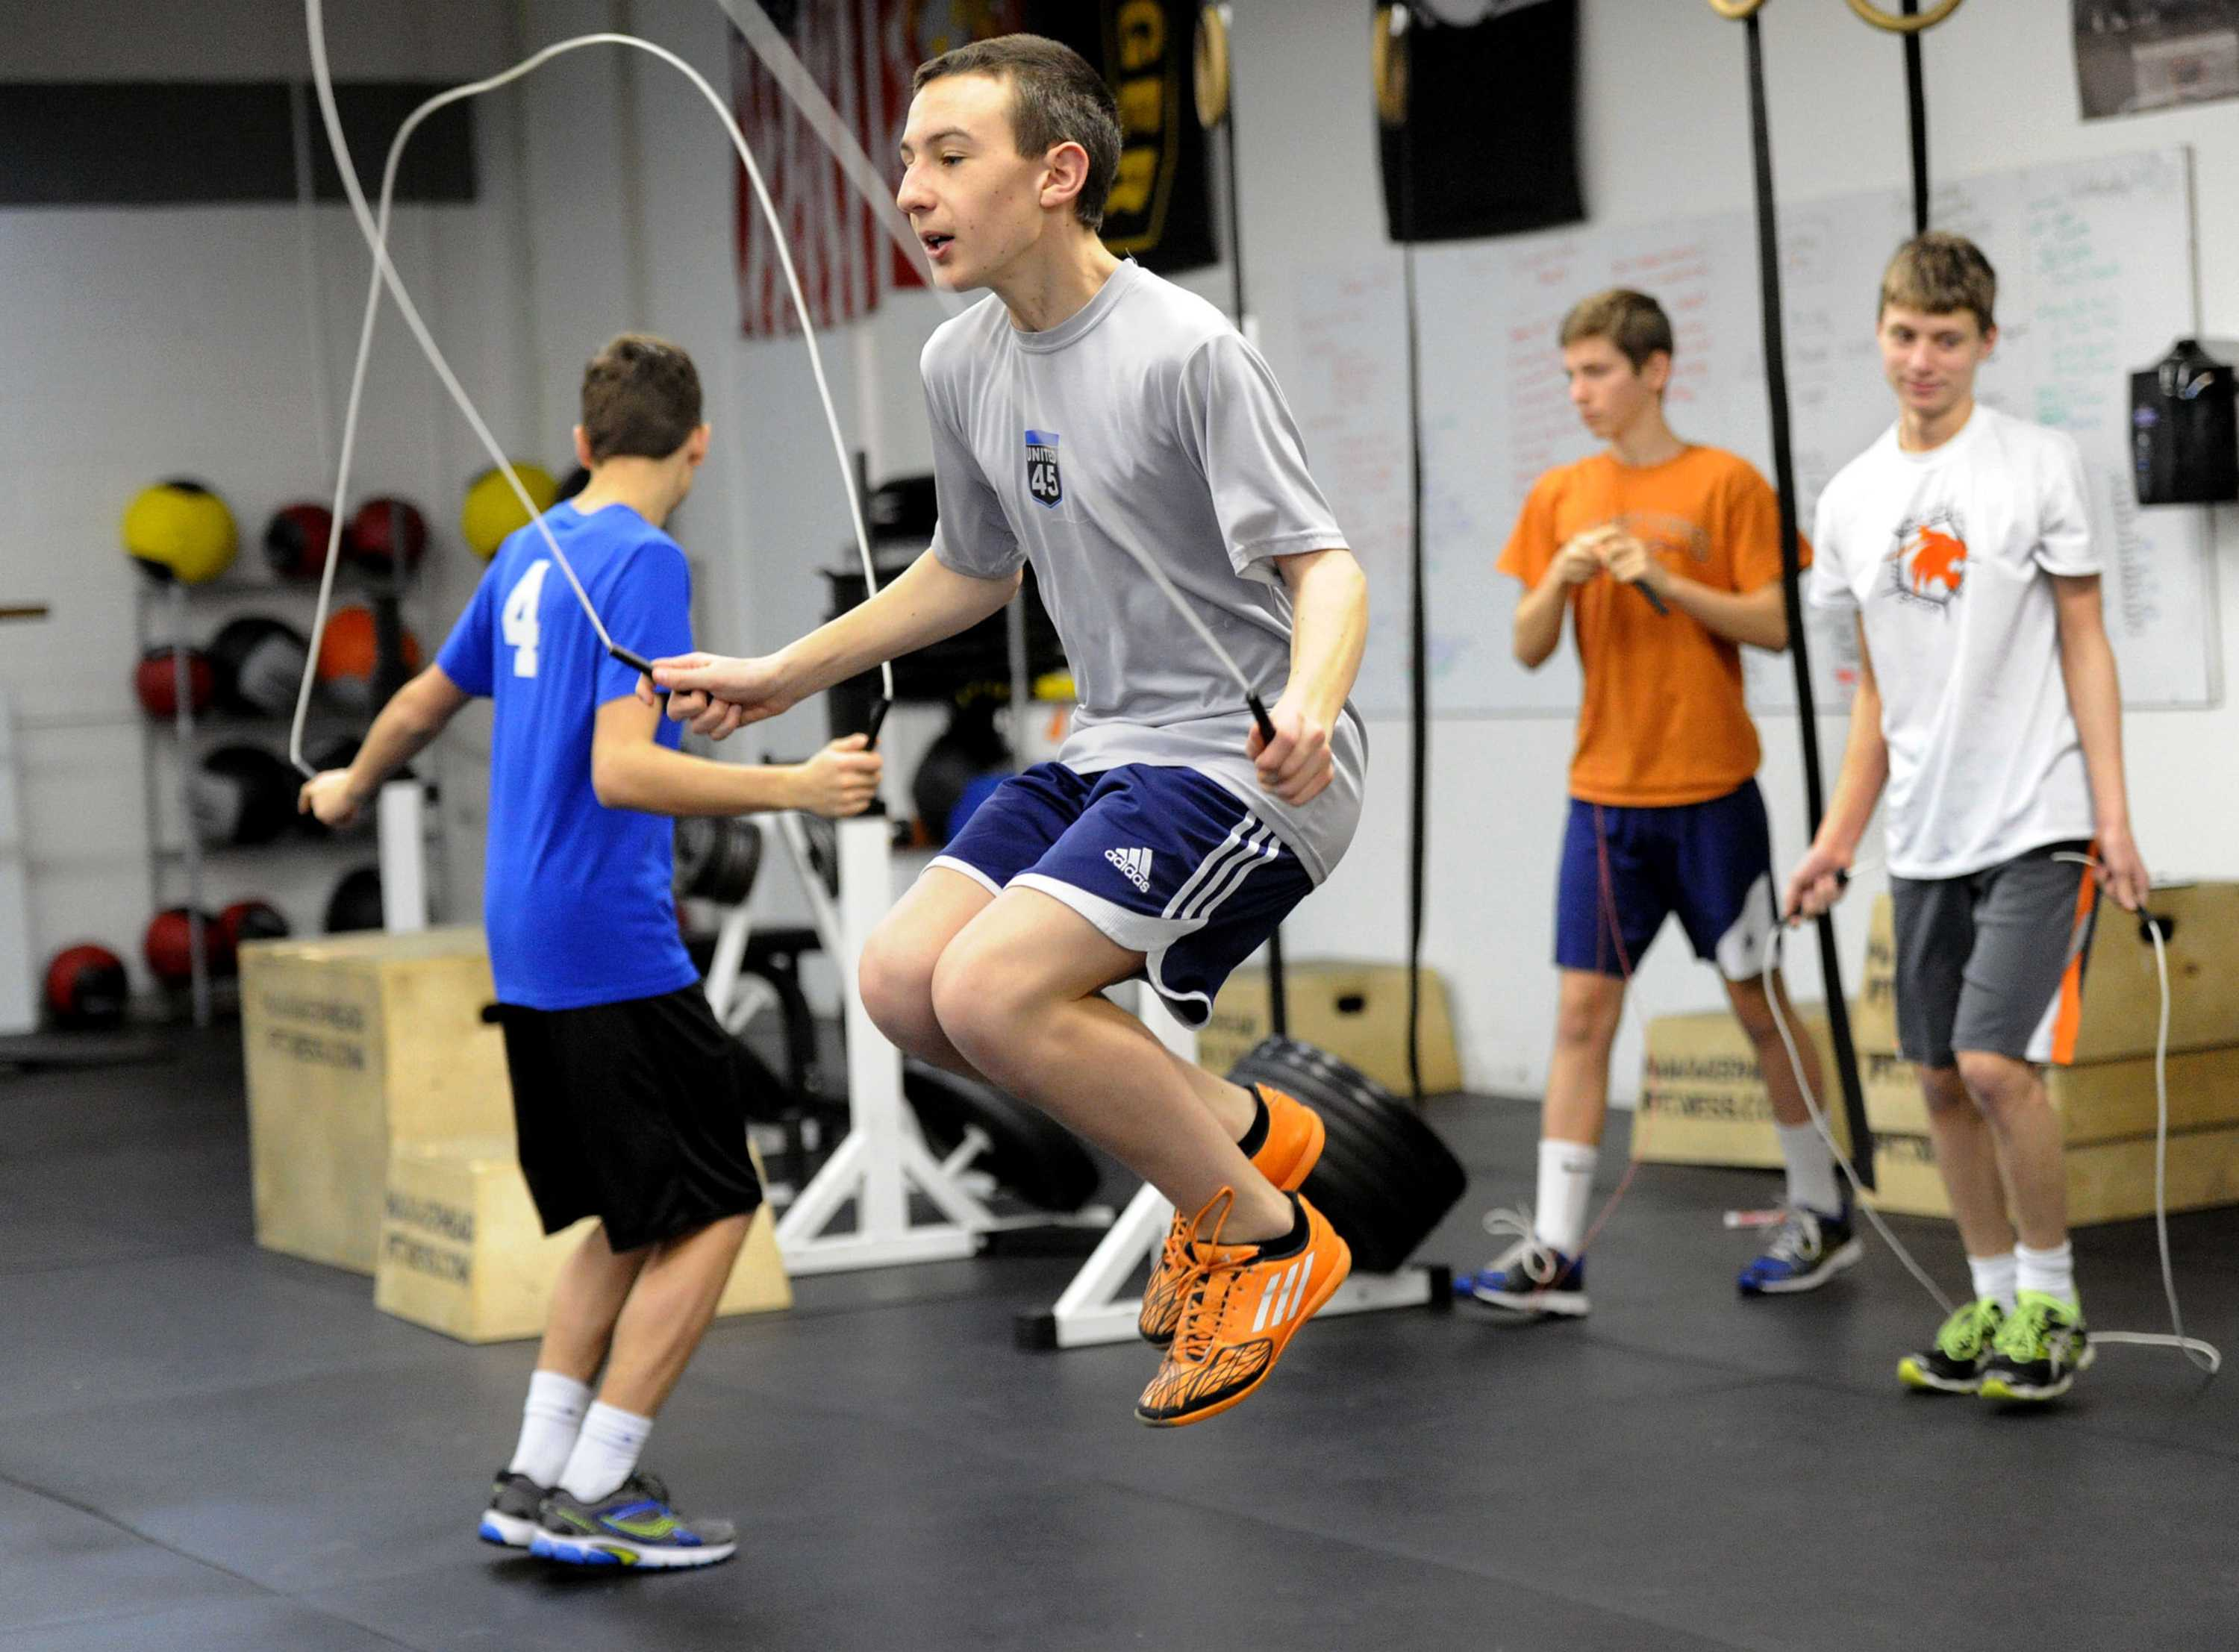 Robert Reed, 15, warms up with a jump rope before a CrossFit class for teens in Loyalhanna, Pa. (John Heller/Pittsburgh Post-Gazette/TNS)